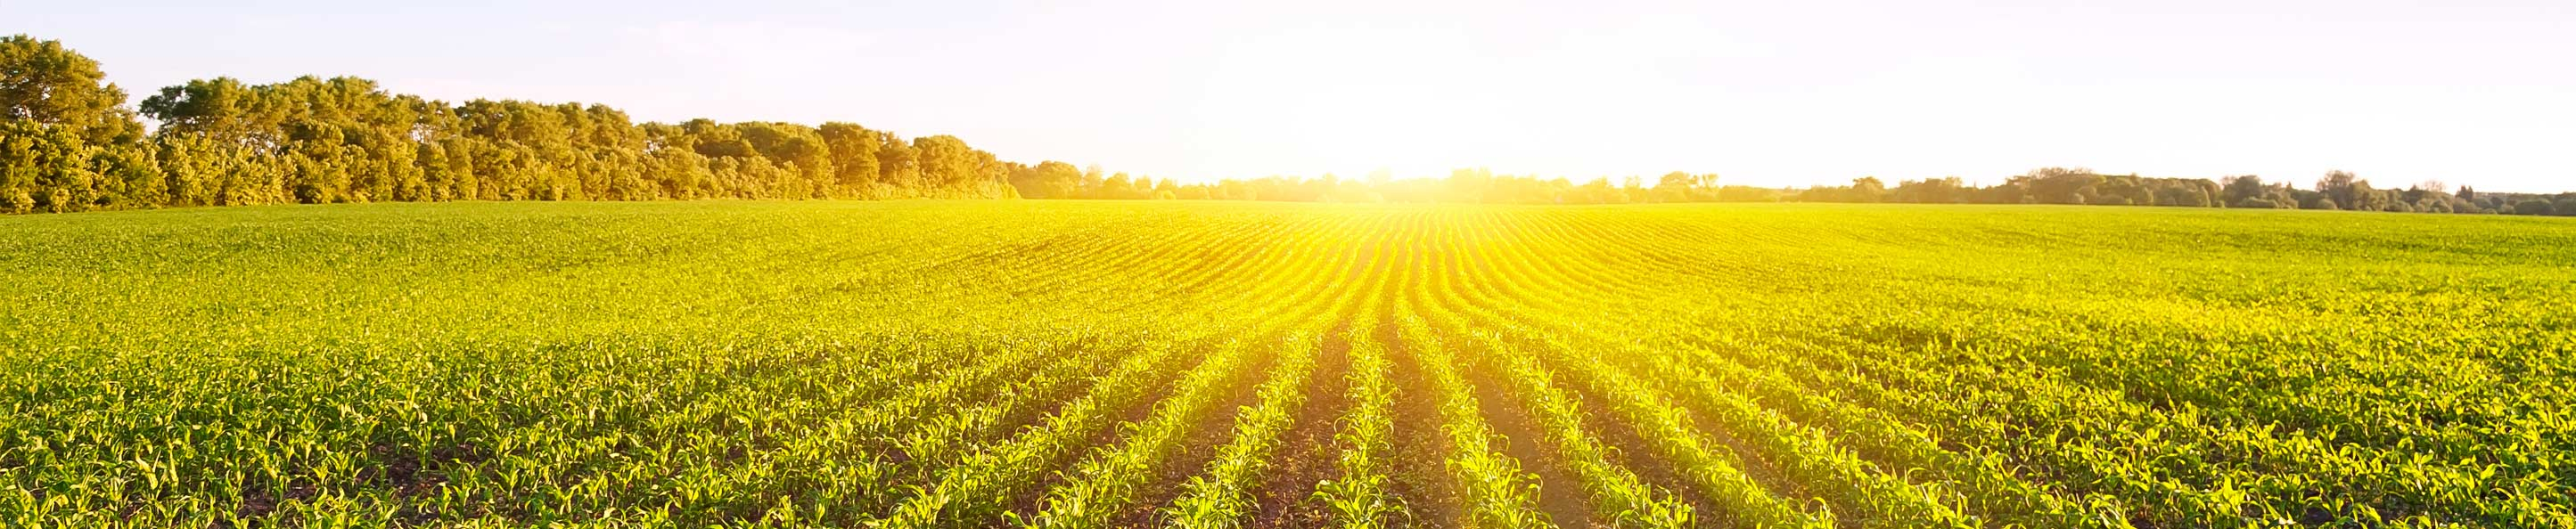 agricultural loan Offering a broad range of agricultural loan, leasing and insurance services from orchard, timber, row crops, winery and livestock financing to equipment leasing and construction financing.